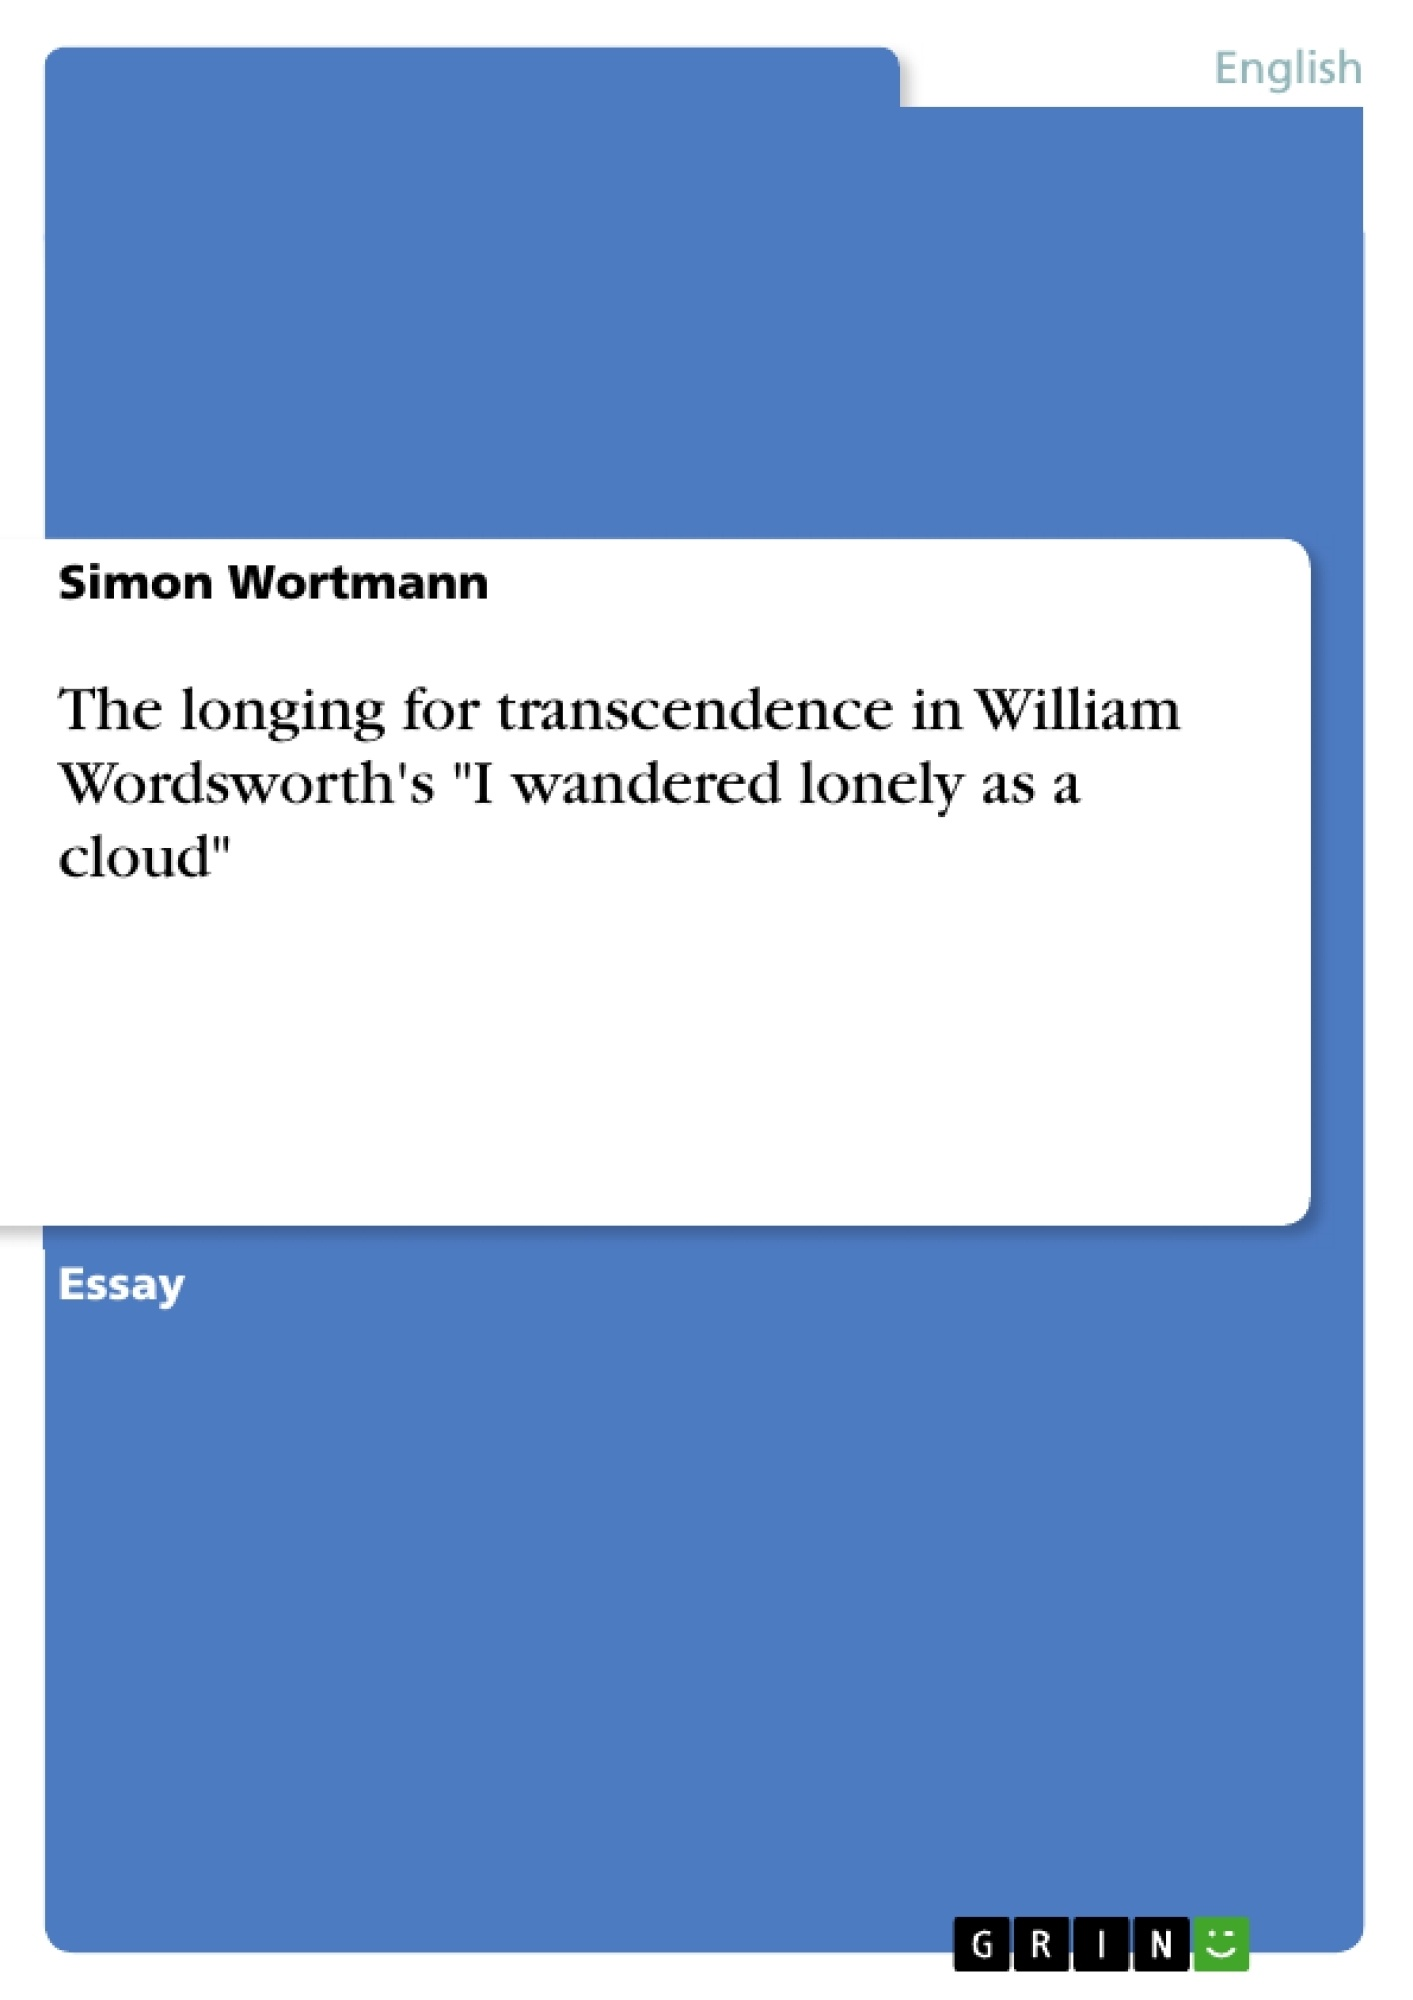 """Title: The longing for transcendence in William Wordsworth's """"I wandered lonely as a cloud"""""""